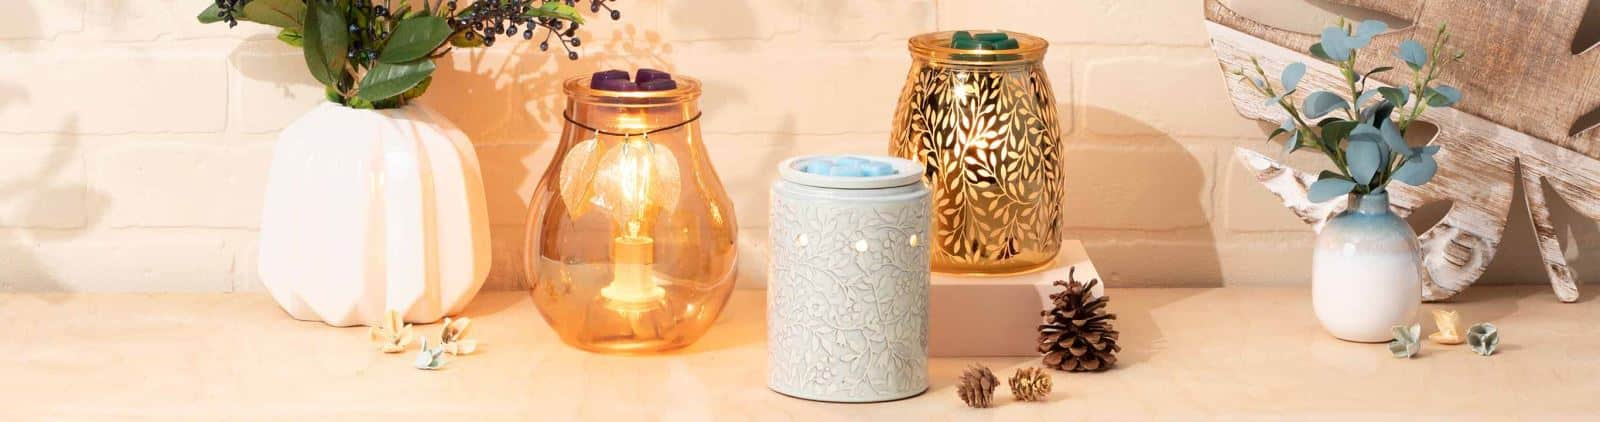 SCENTSY WARMERS SHOP NOW